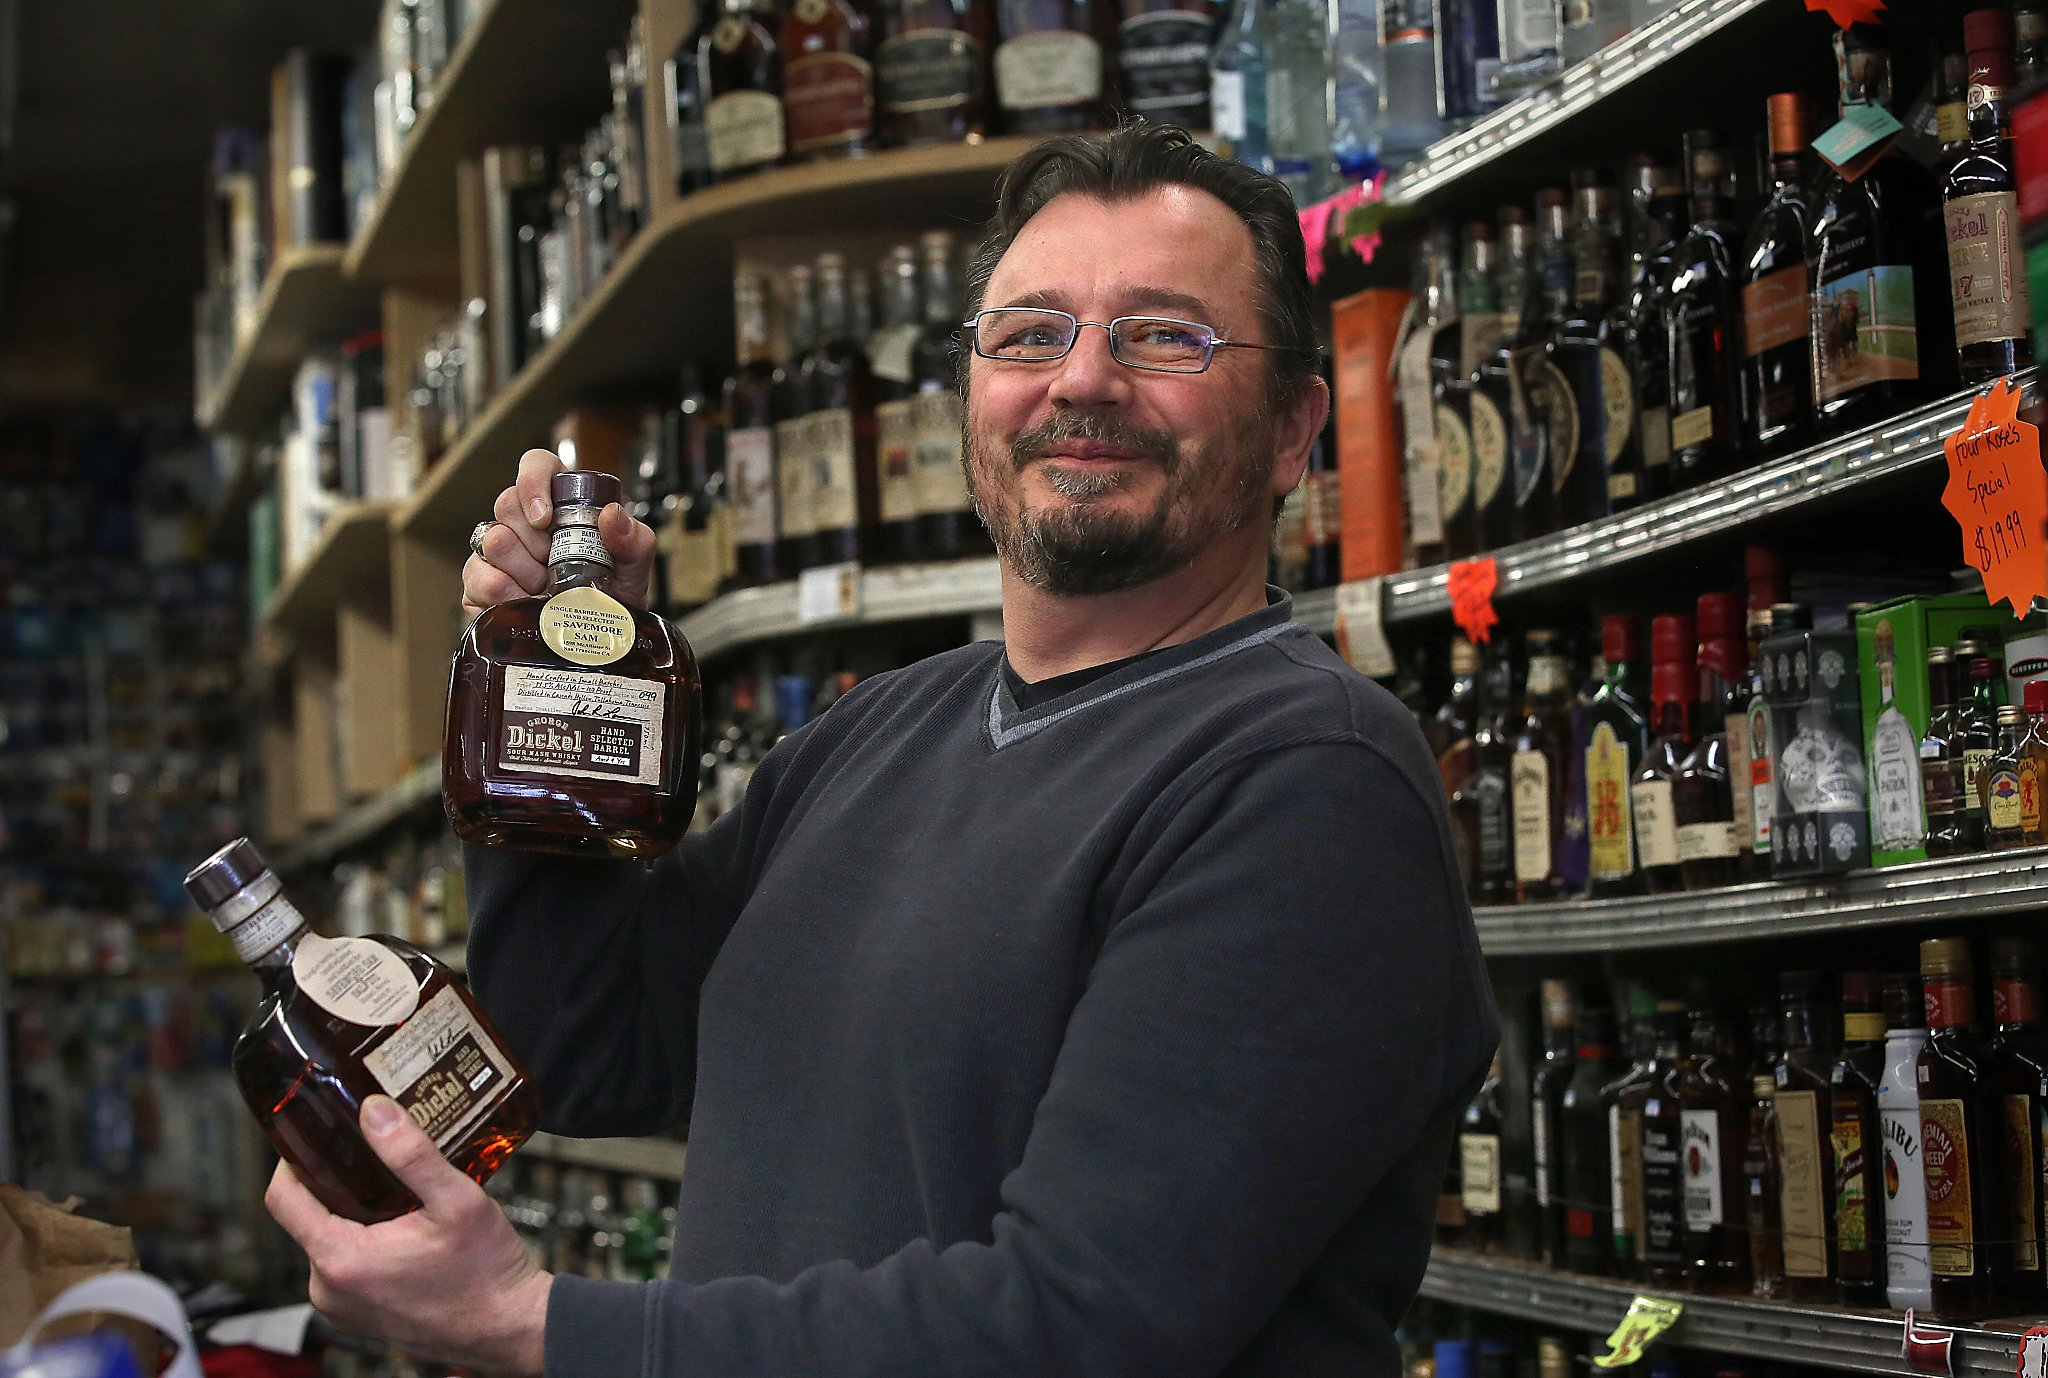 A superlative stash of bourbons at an unlikely S.F. corner store